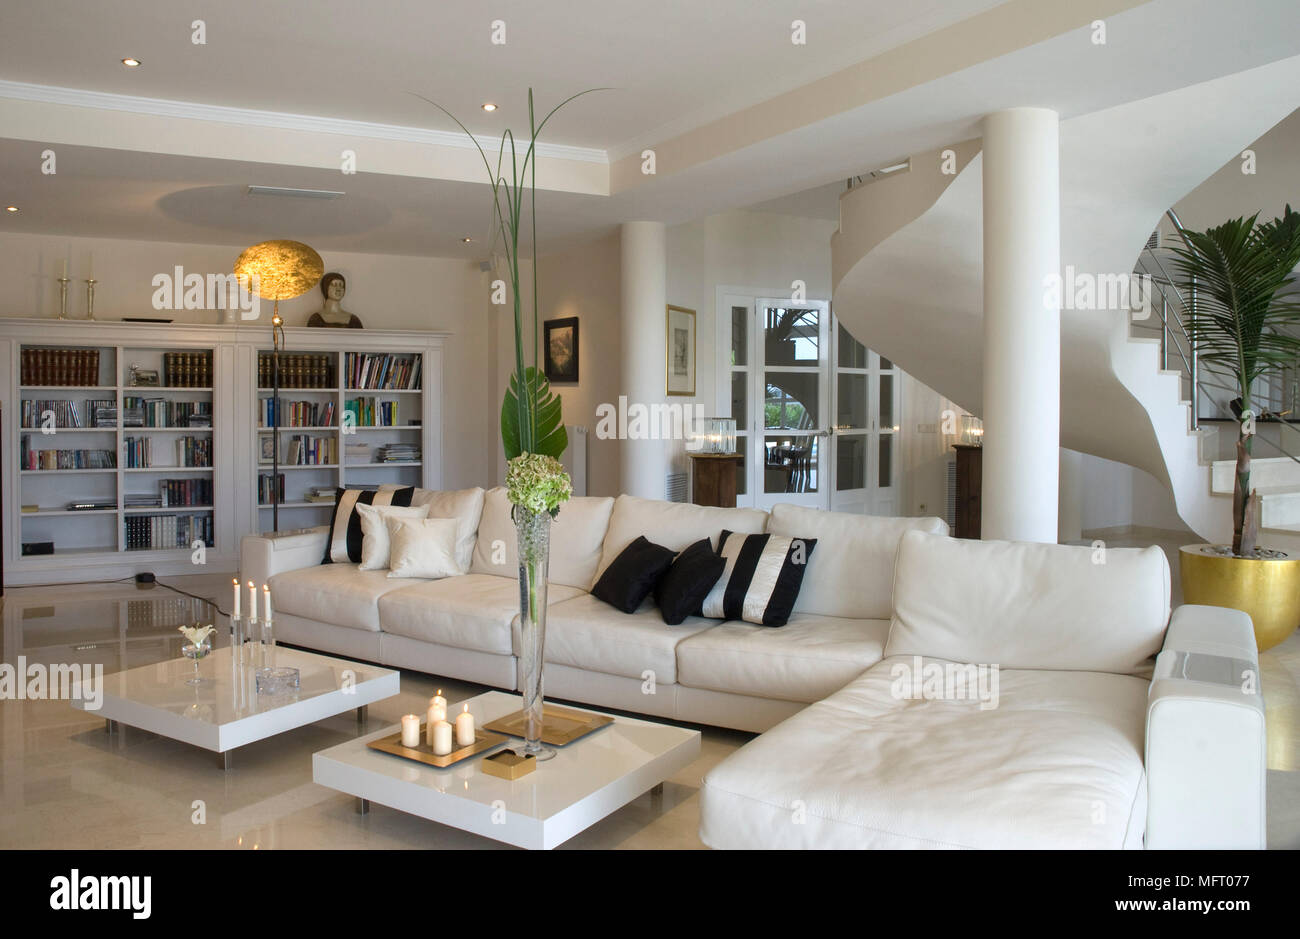 Low Coffee Tables In Front Of L Shaped Sofa In Modern Sitting Room Stock Photo Alamy